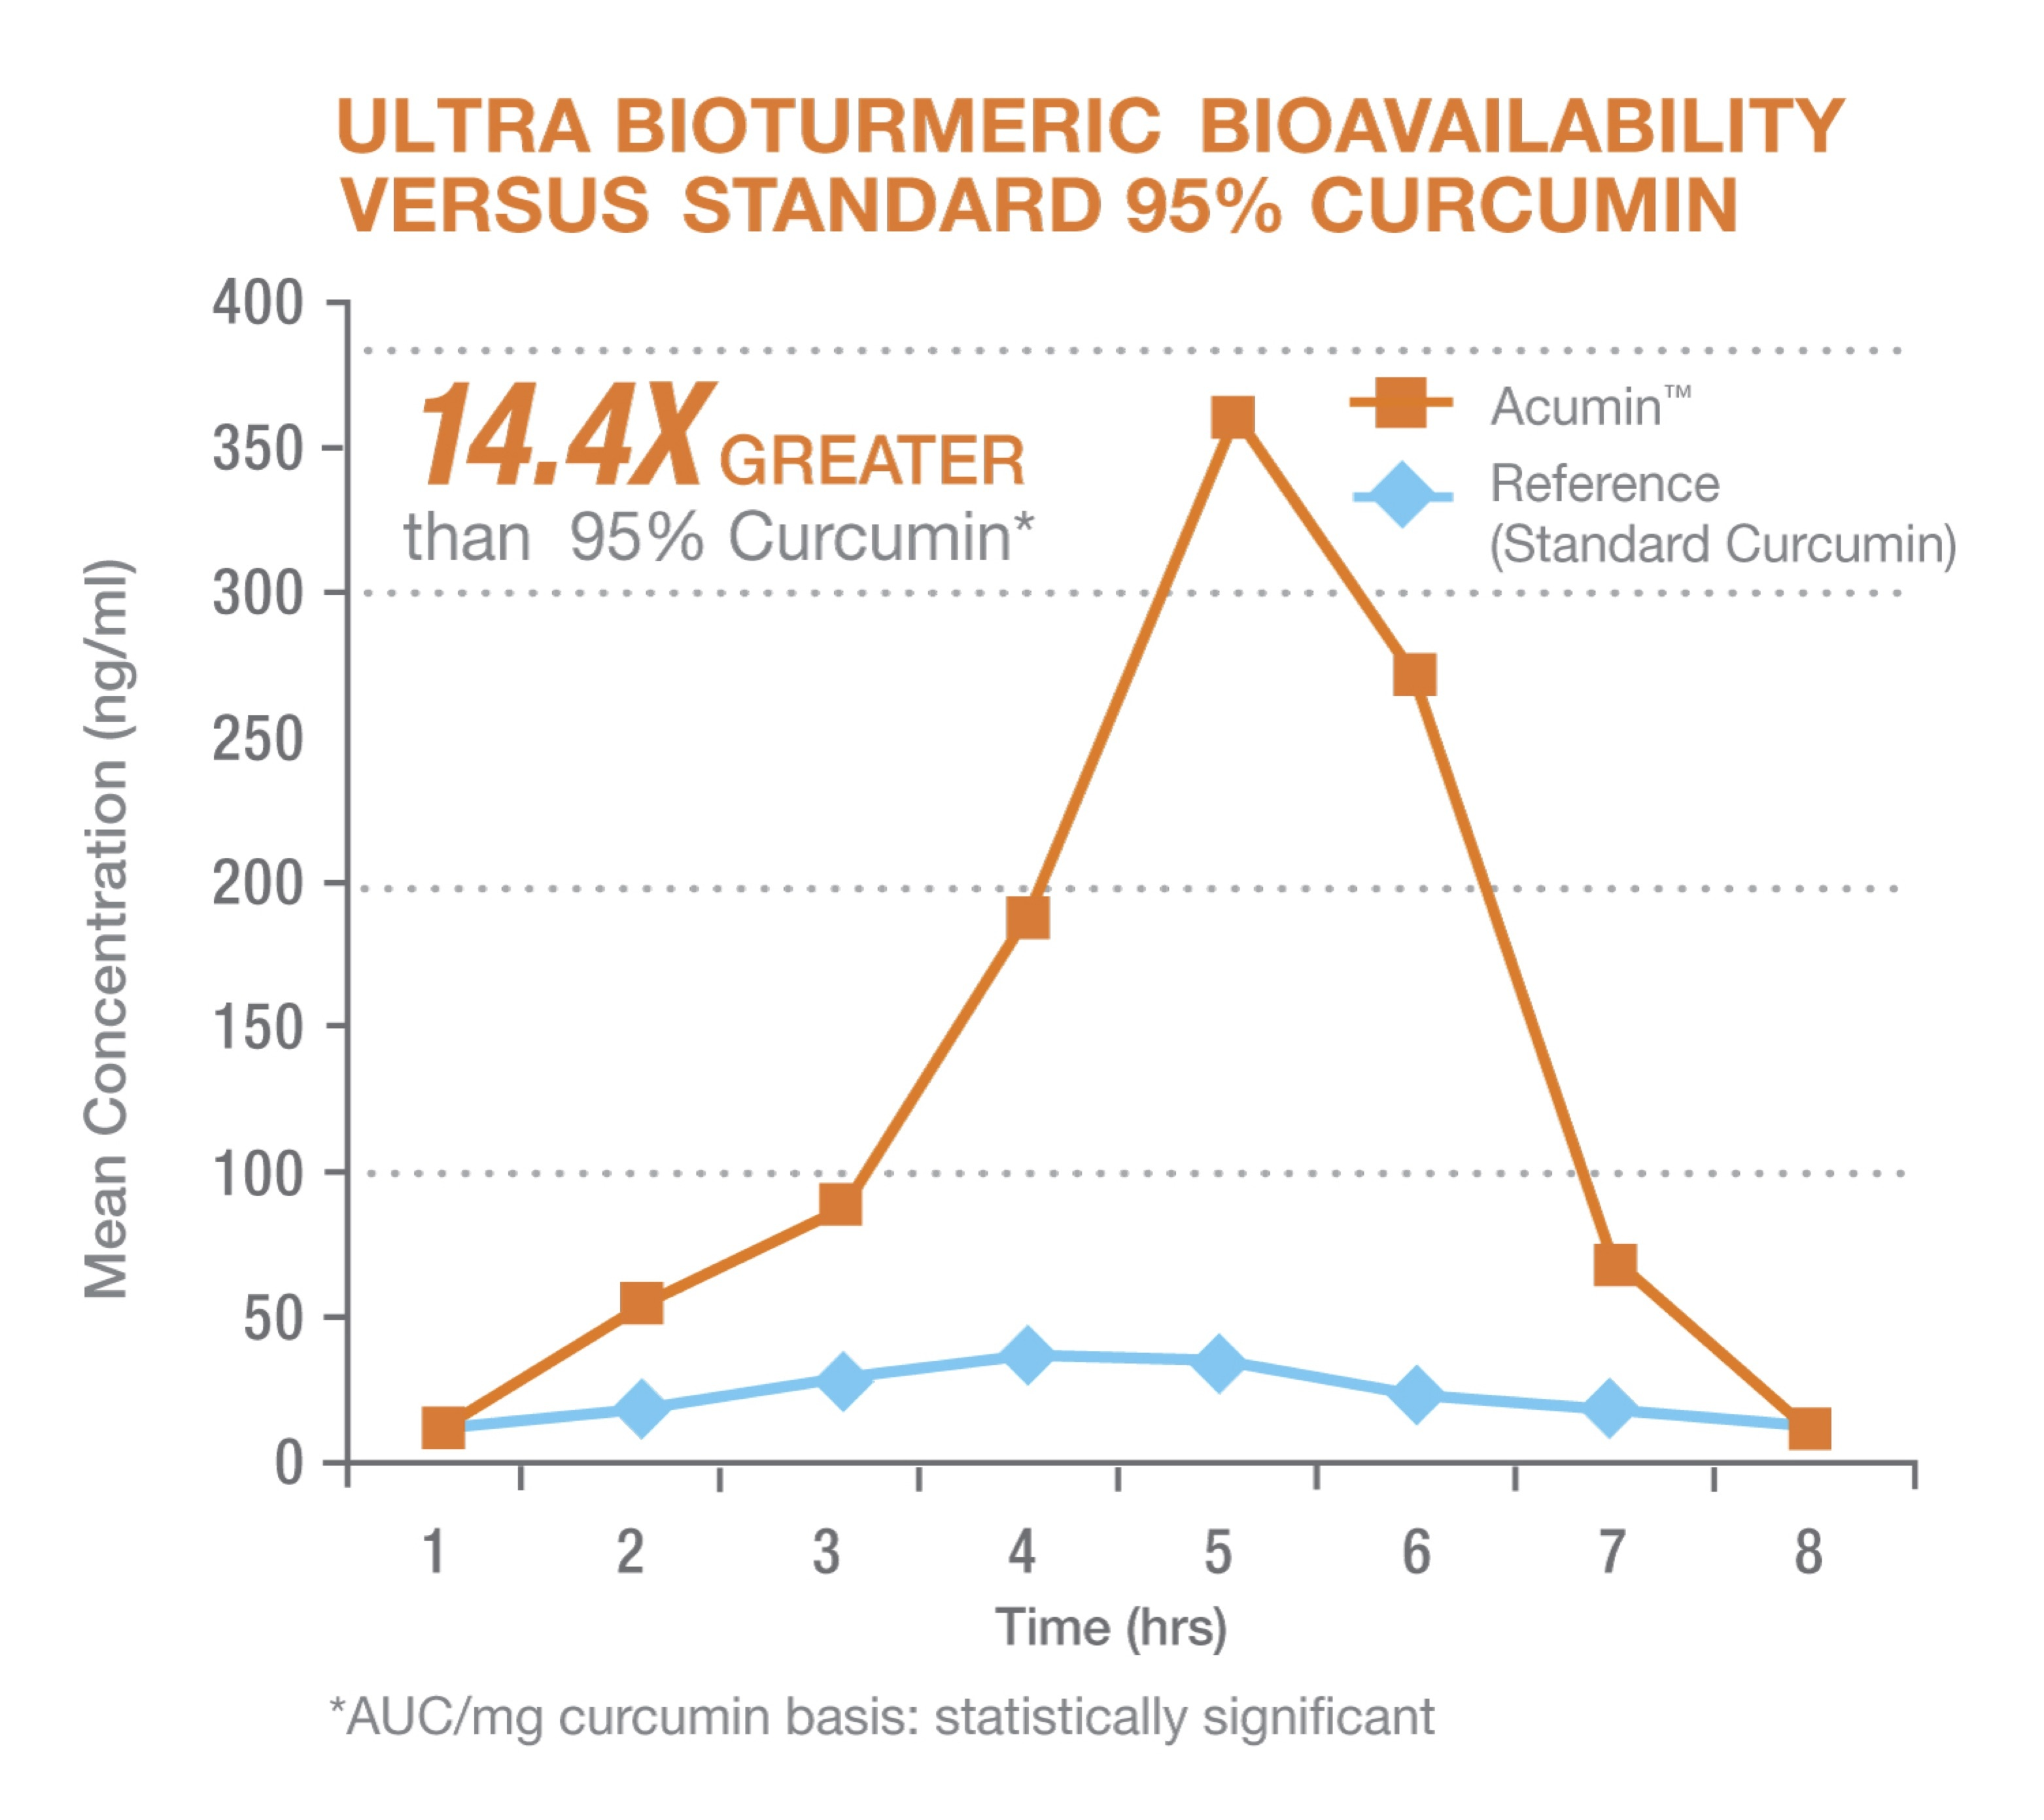 Graph showing Acumin Technology has 14.4x greater bioavailability than 95% curcumin